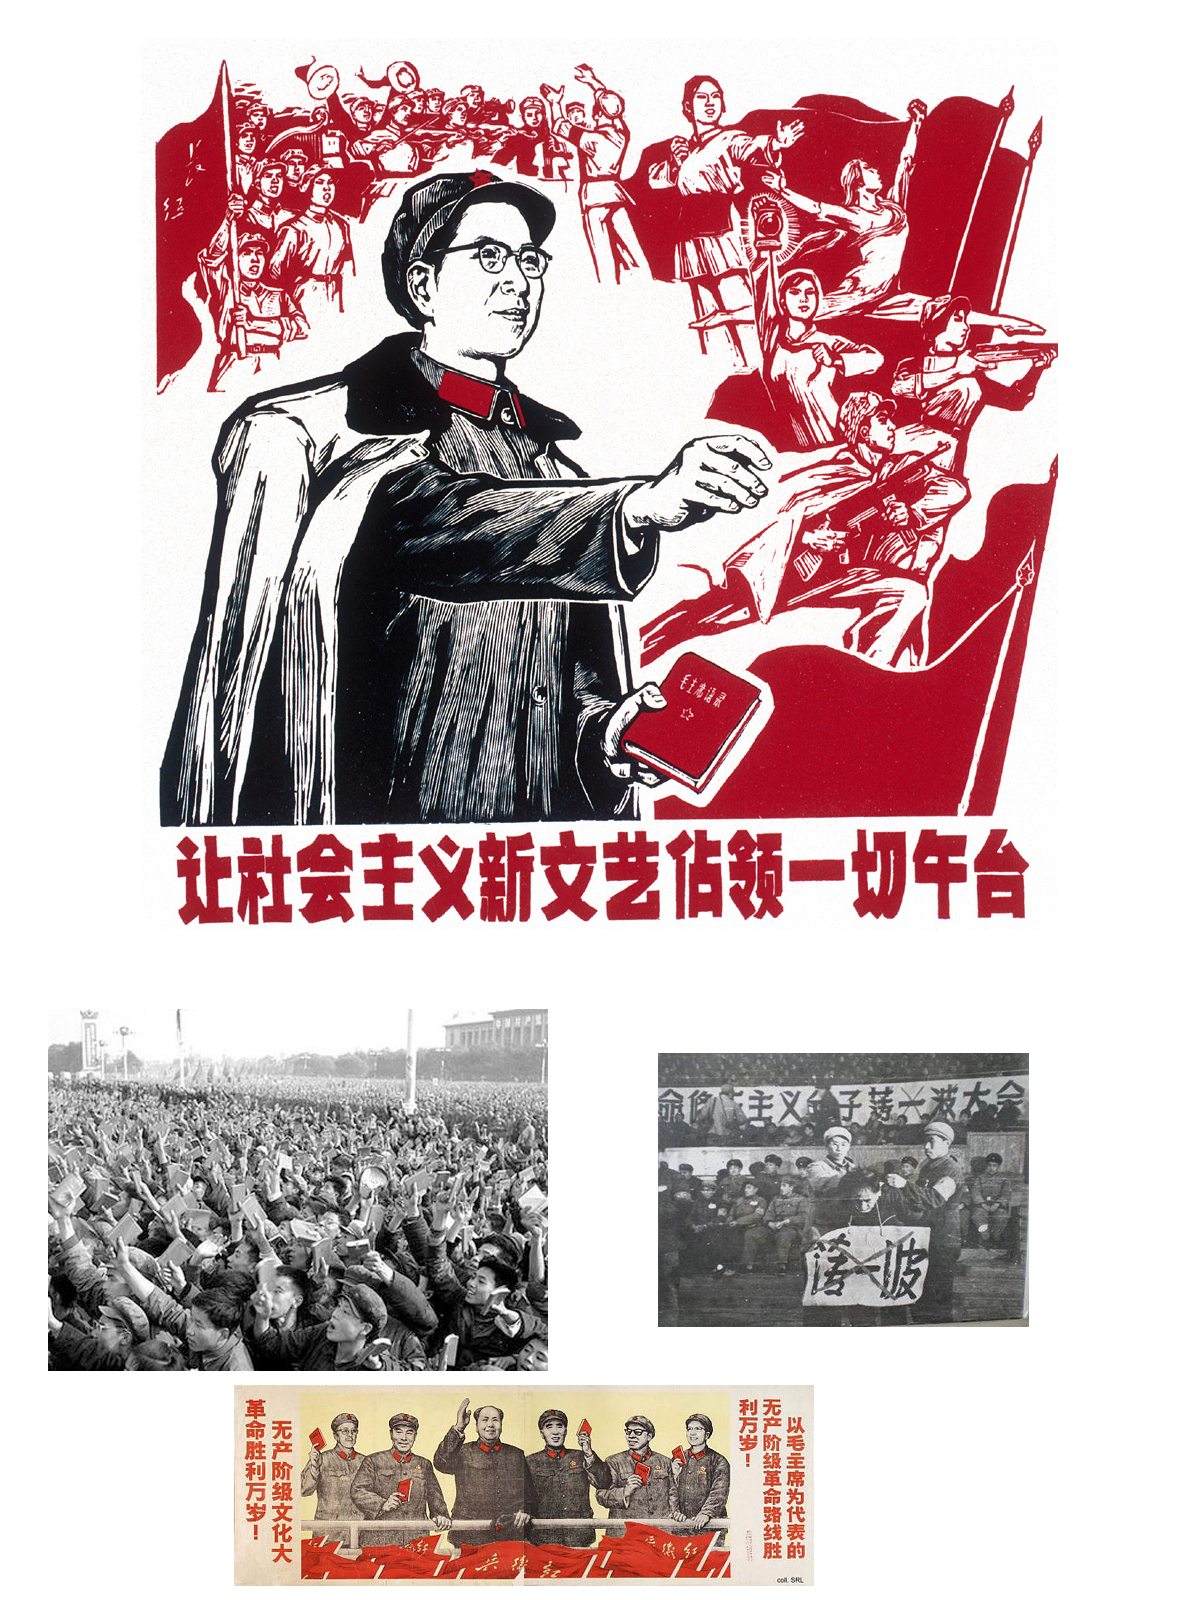 Jiang Qing and the Great Proletarian Cultural Revolution